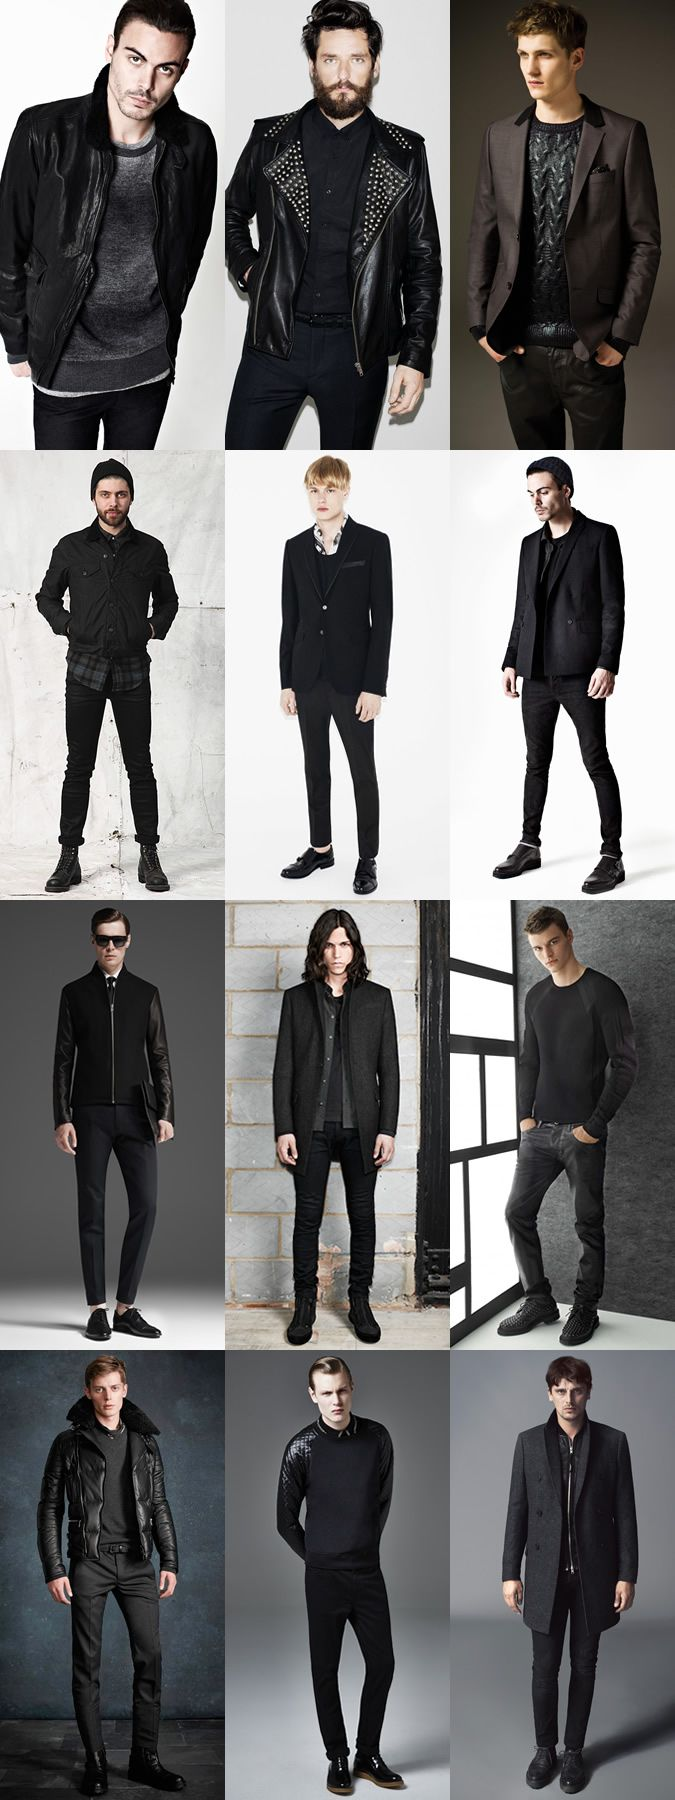 Men's All Black Outfit Inspiration Lookbook